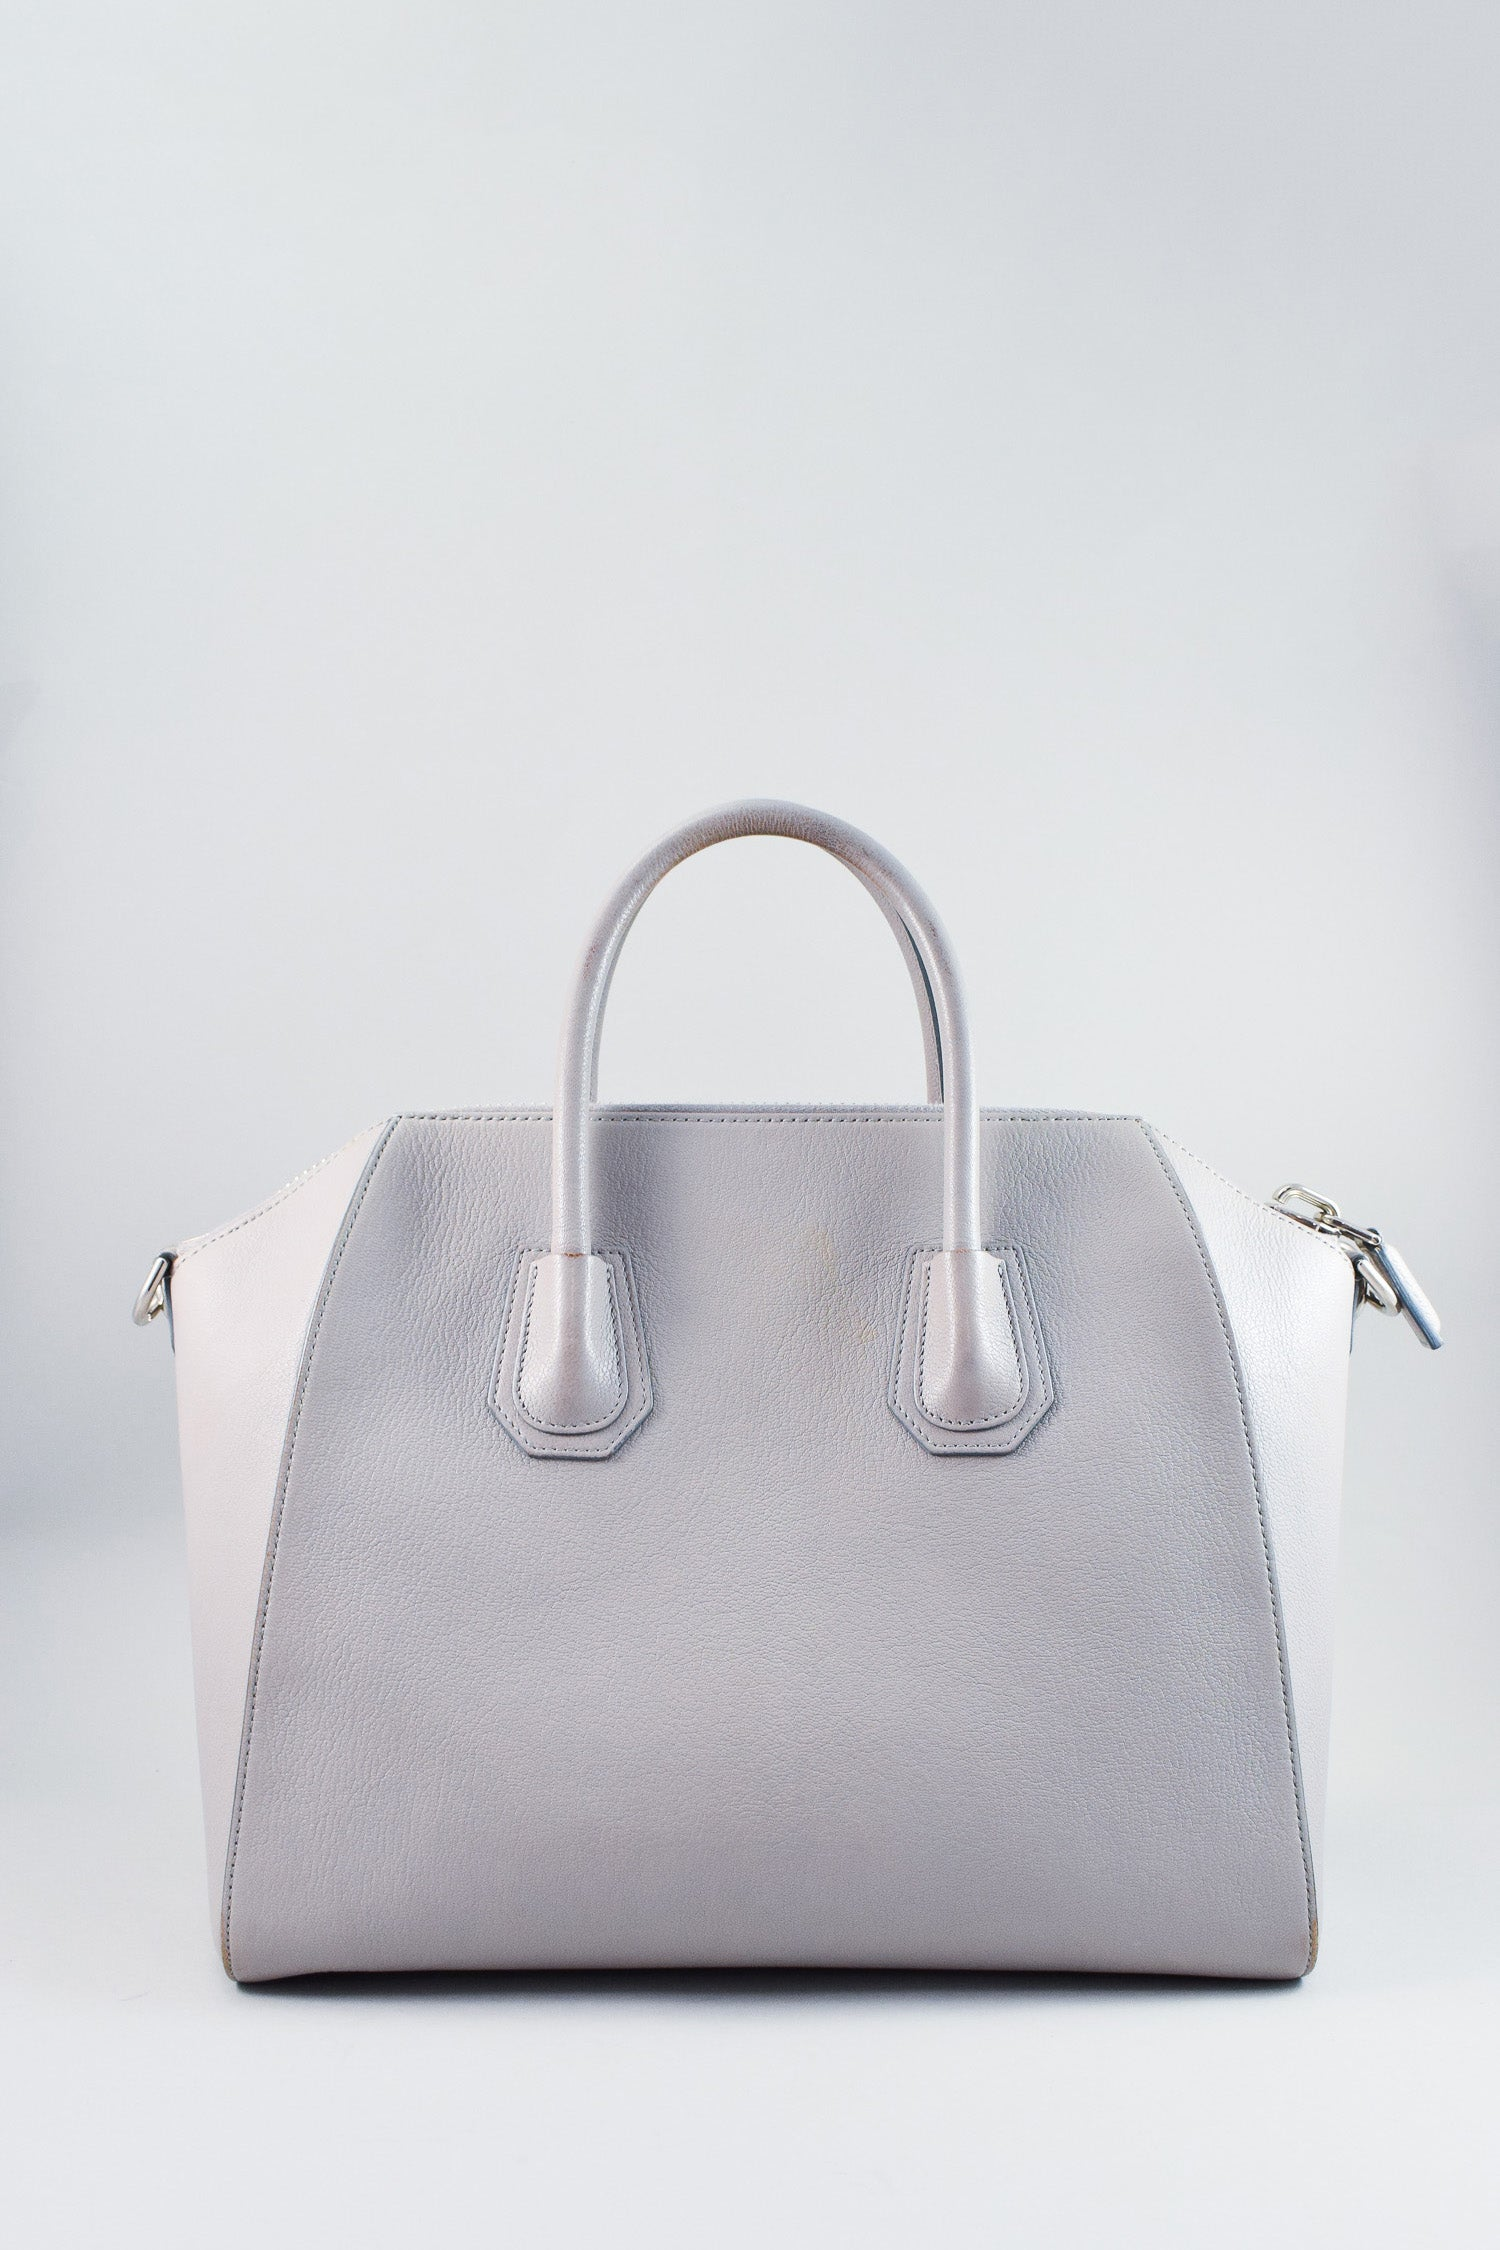 Givenchy Grey Medium Antigona Bag